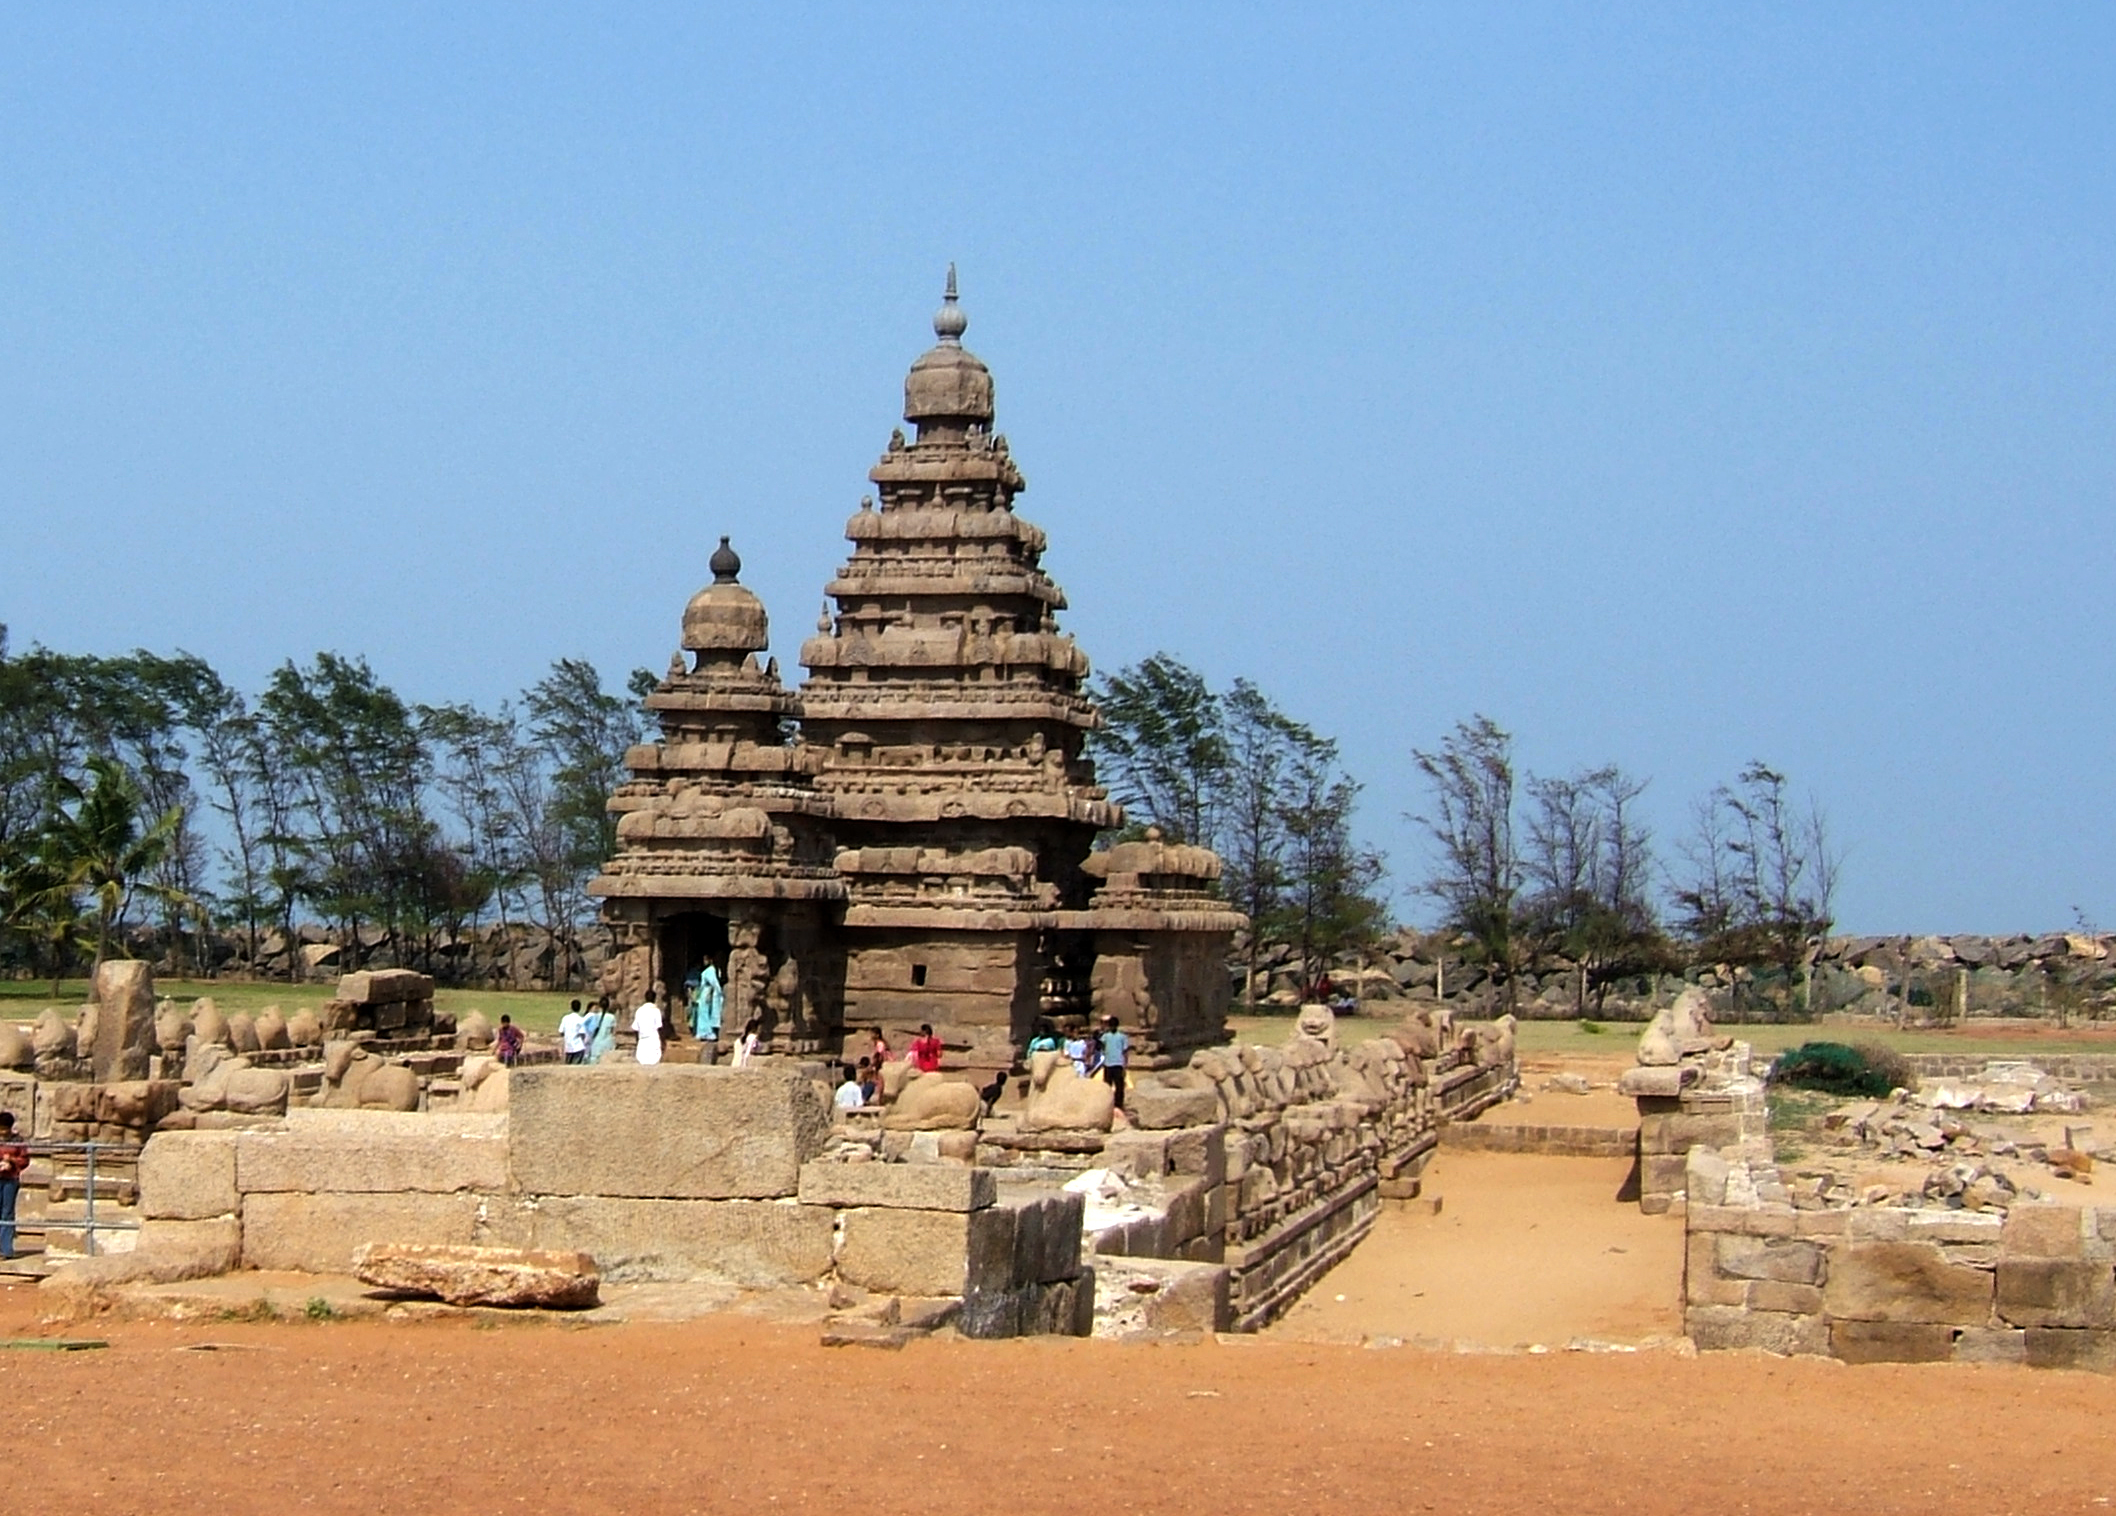 Mamallapuram Shore Temple Andy Hay